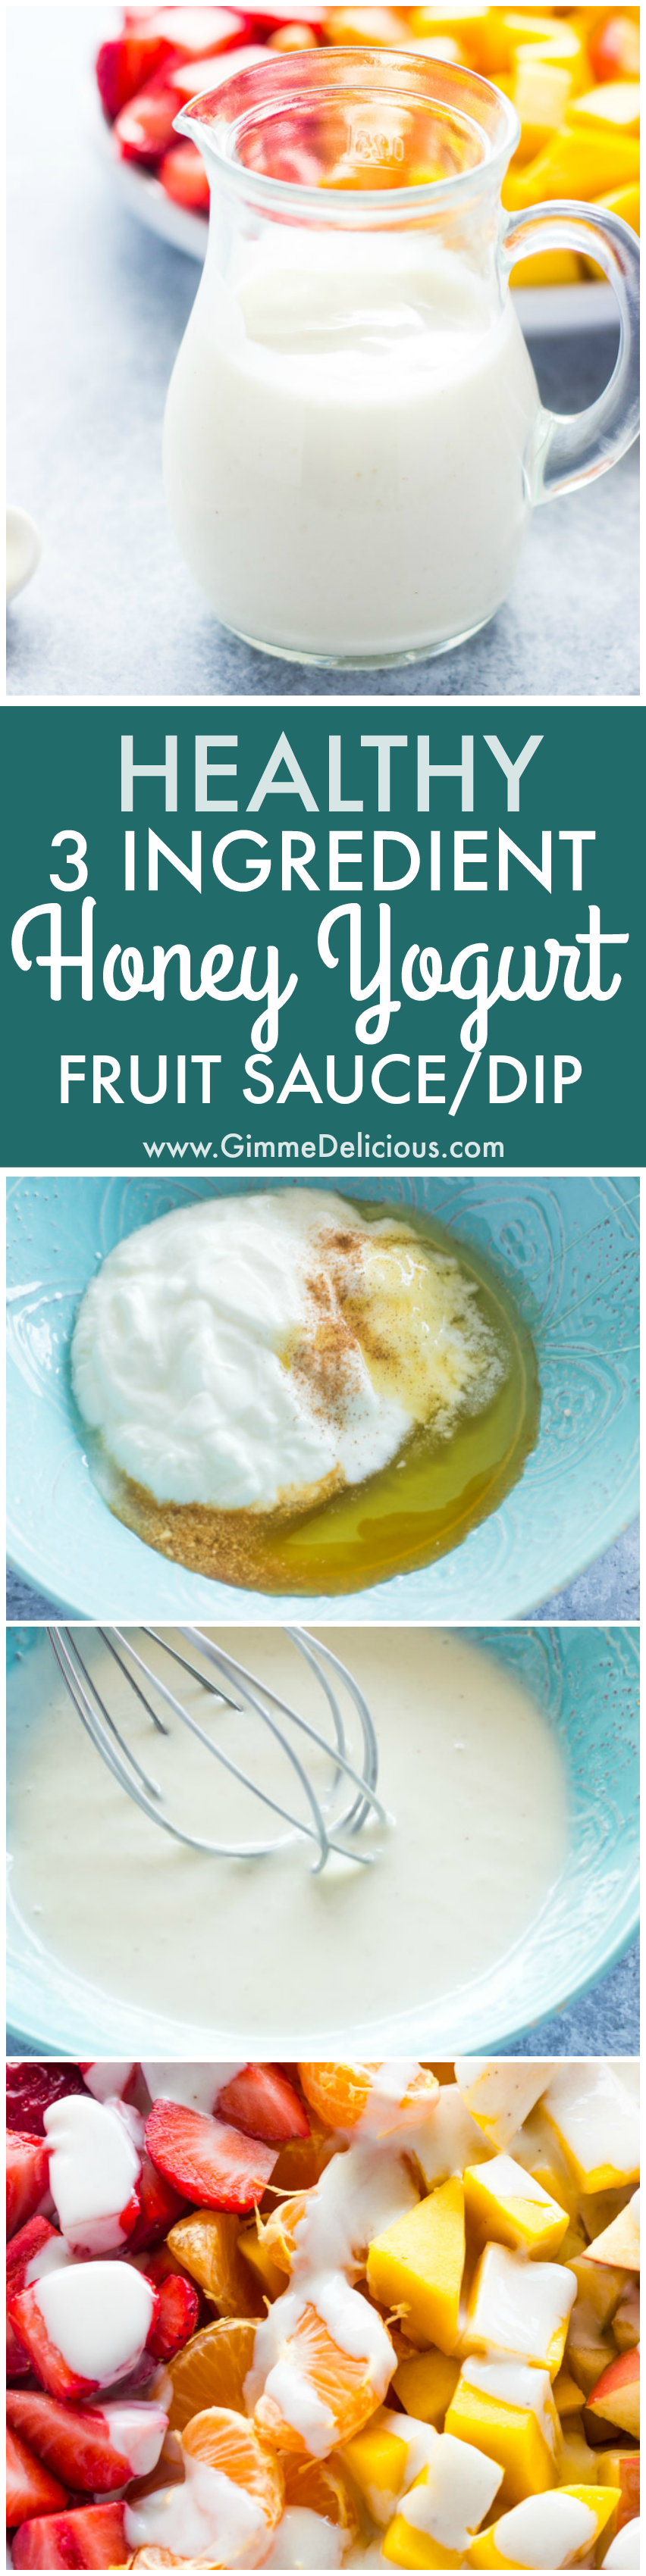 3 Ingredient Healthy Honey Yogurt Fruit Sauce / Dip